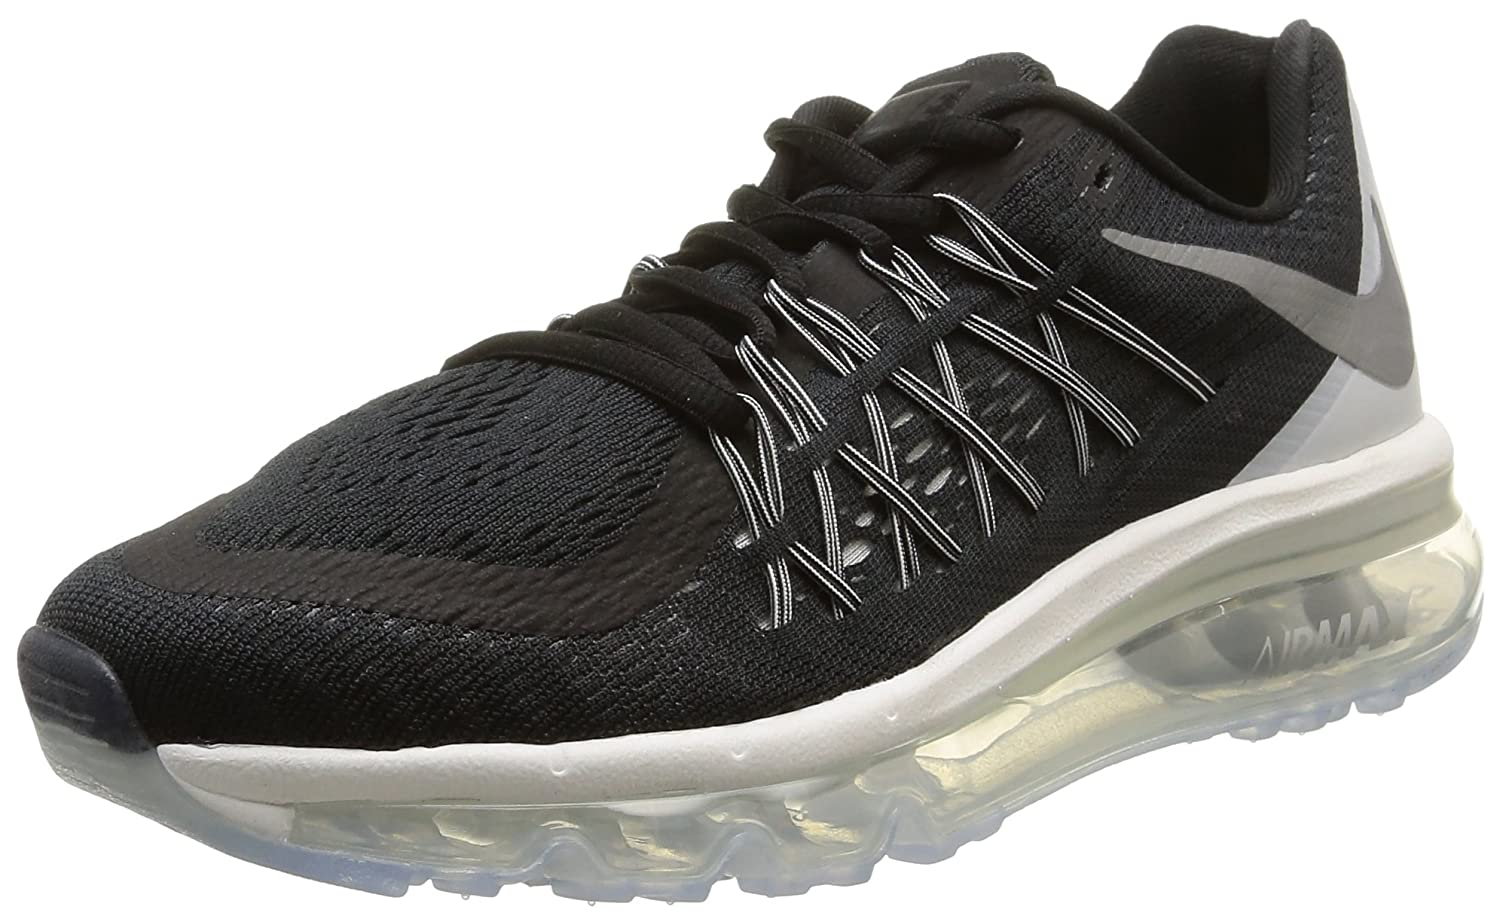 hot sale online 11194 19fd9 Amazon.com   NIKE Womens Air Max 2015 Running Shoes   Running